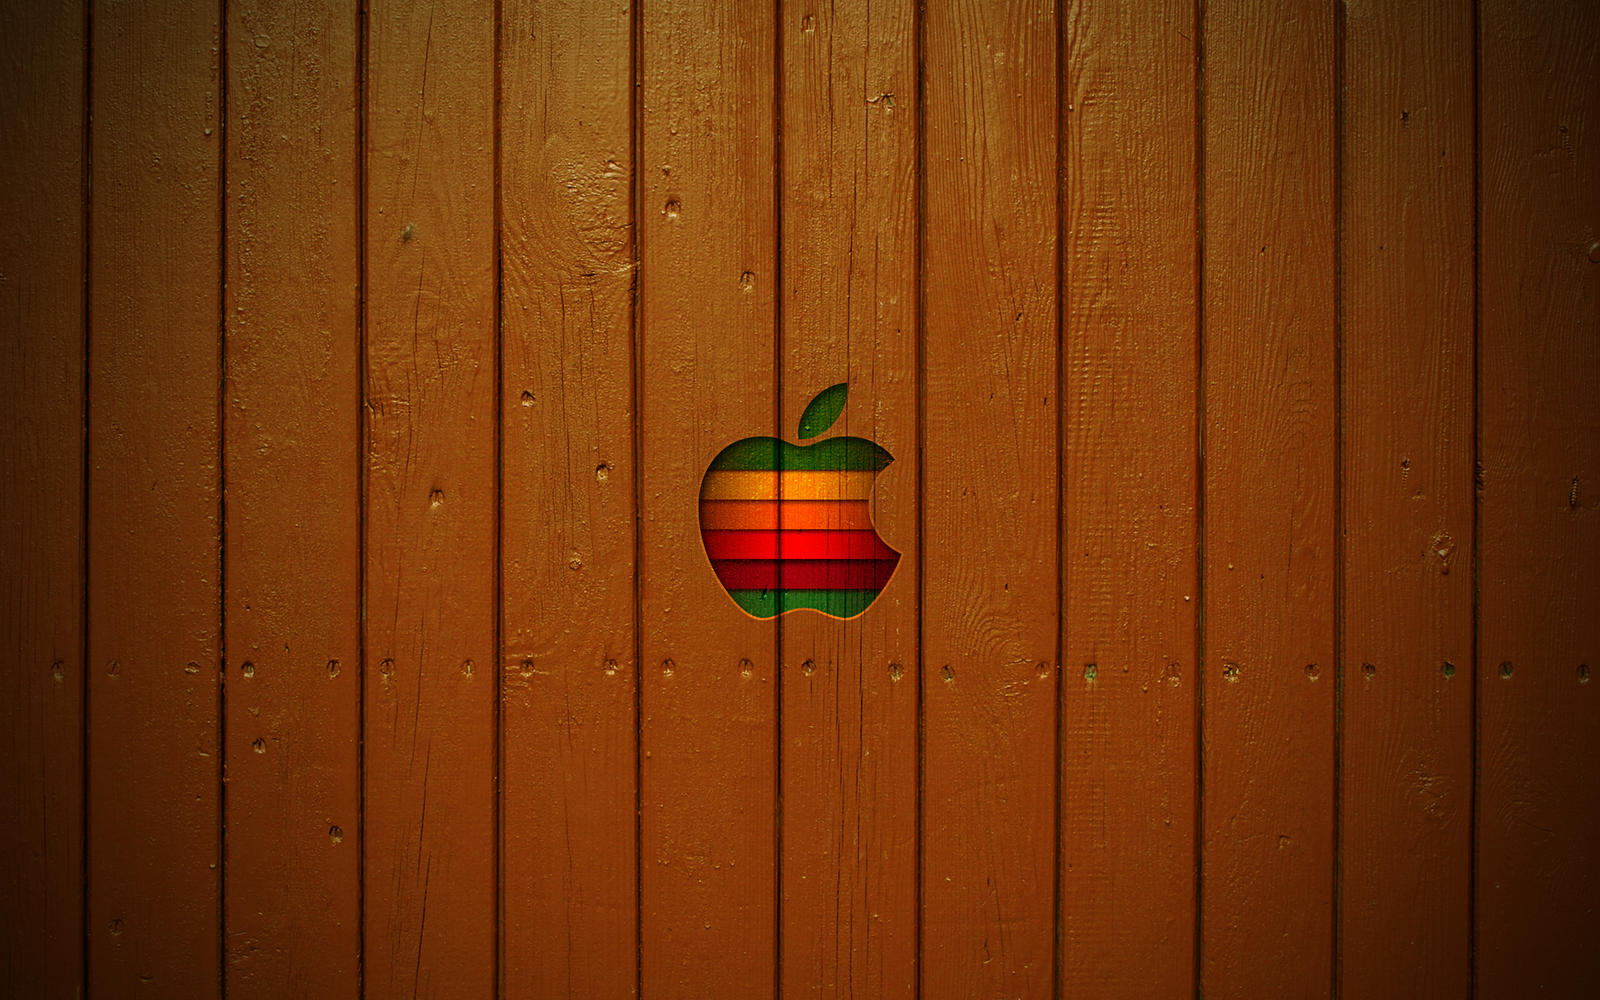 Mac Wooden Style Wallpaper by ulrikstoch